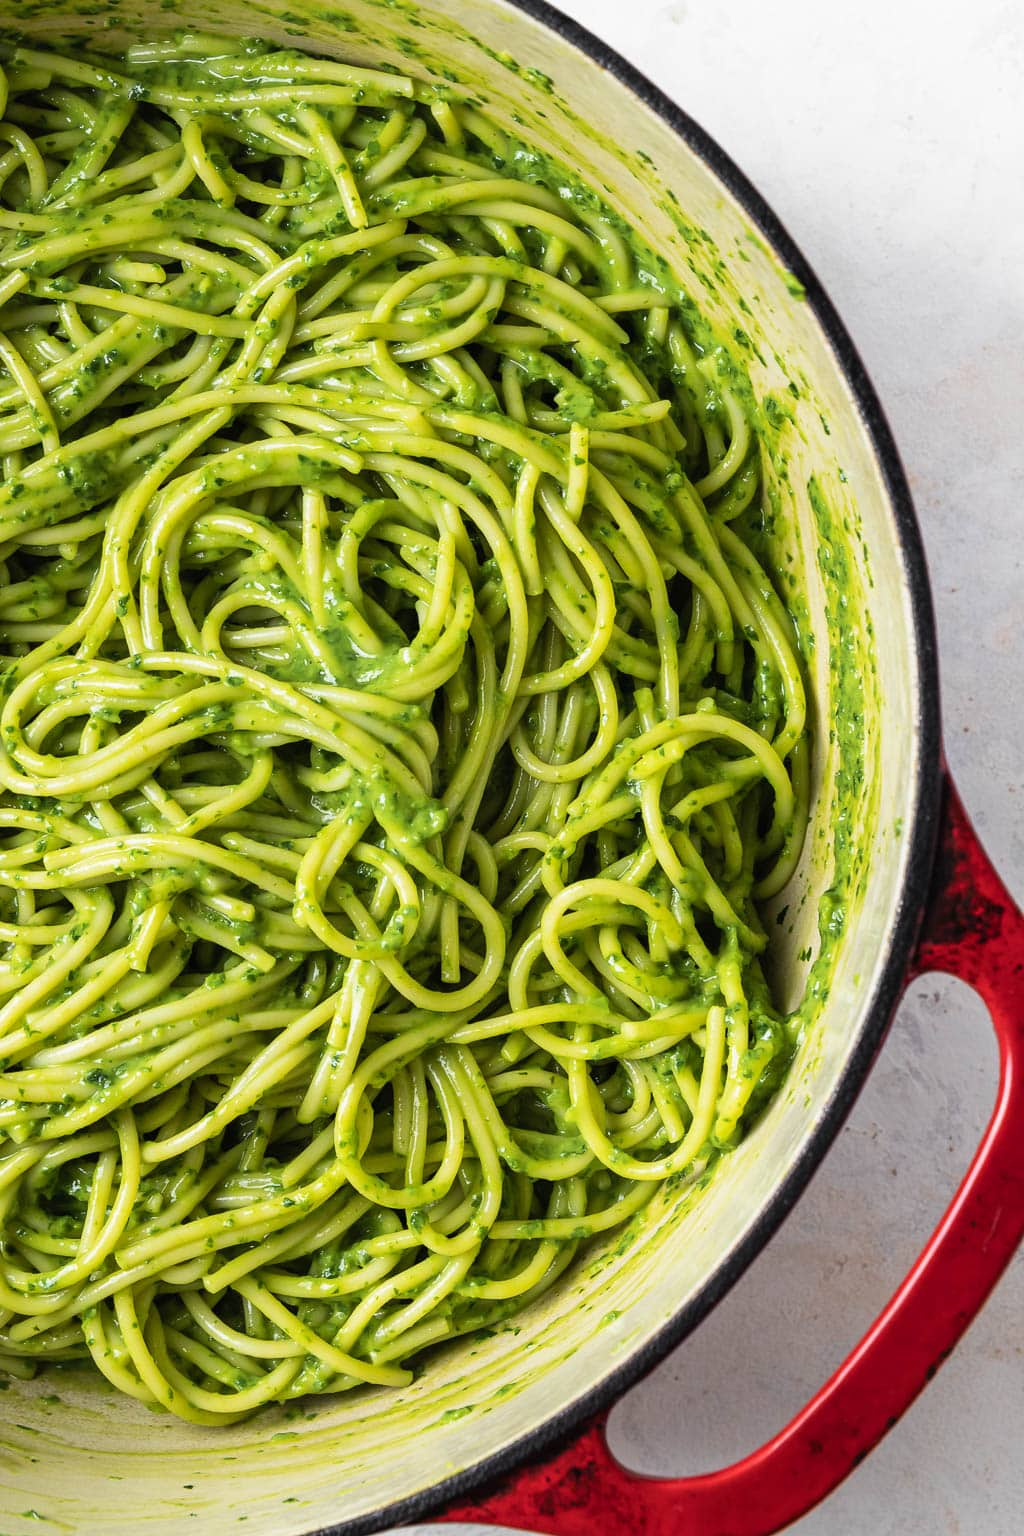 red handled pot with avocado tarragon pesto pasta